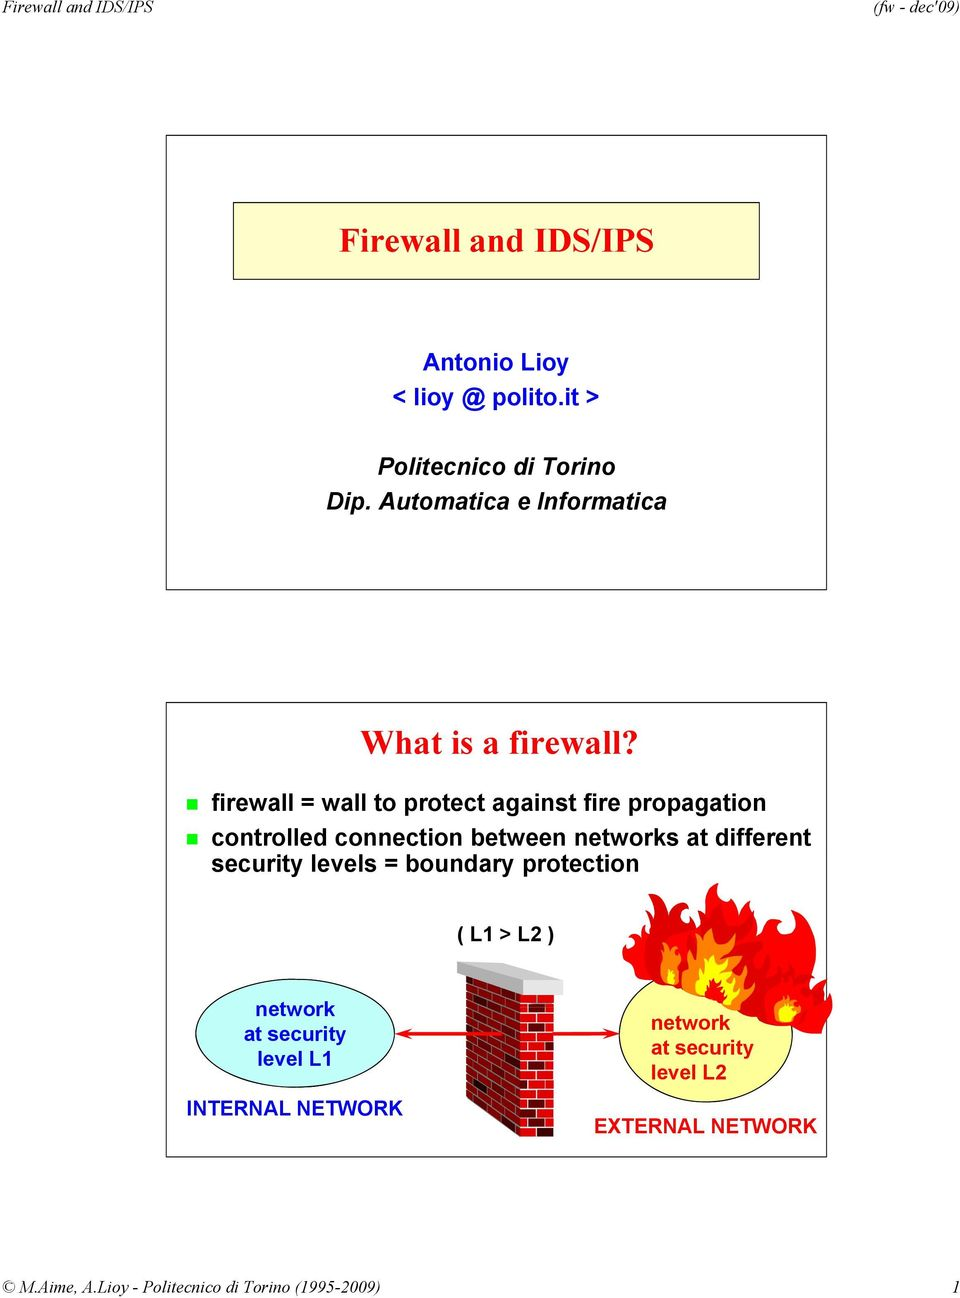 firewall = wall to protect against fire propagation controlled connection between s at different